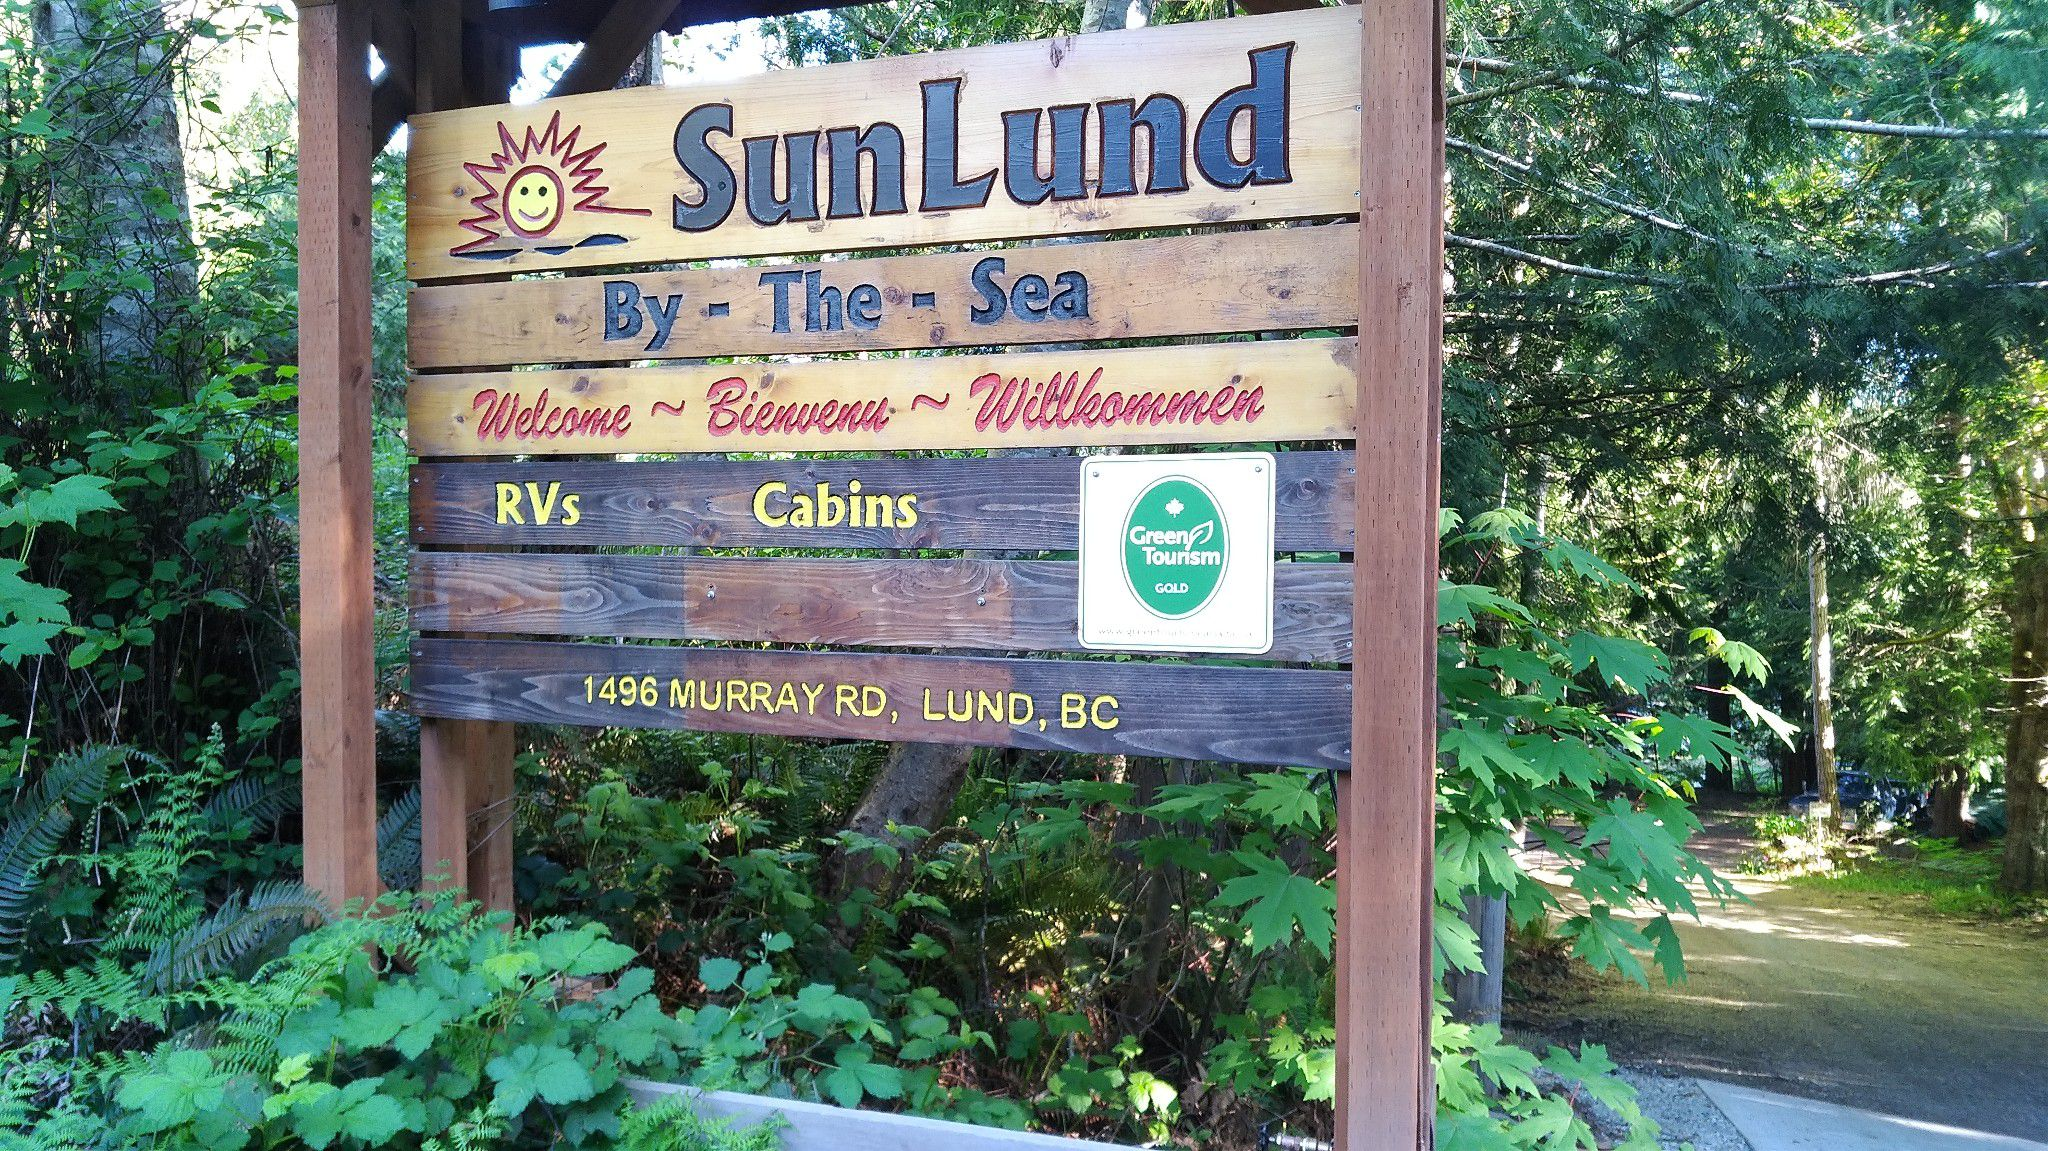 Sunlund RV Resort Lund Harbour, BC